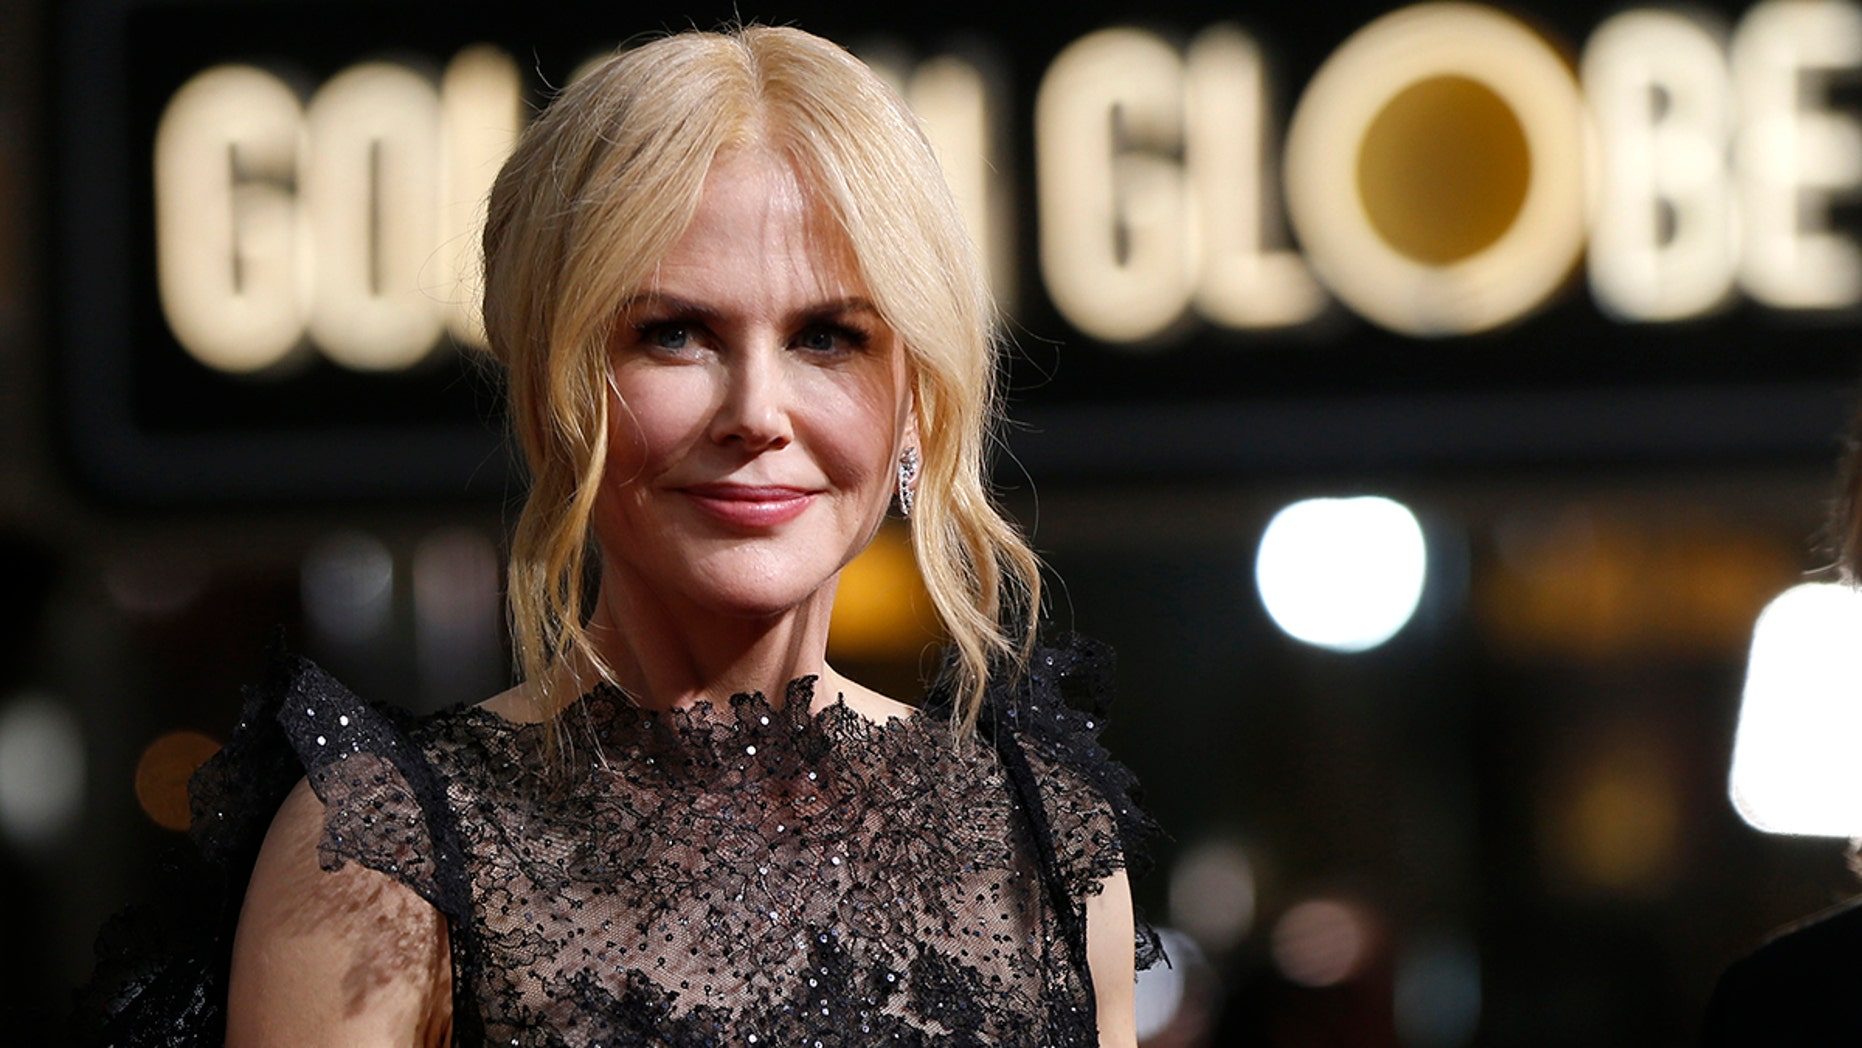 images Here's why Nicole Kidman will not be collaborating with Keith Urban